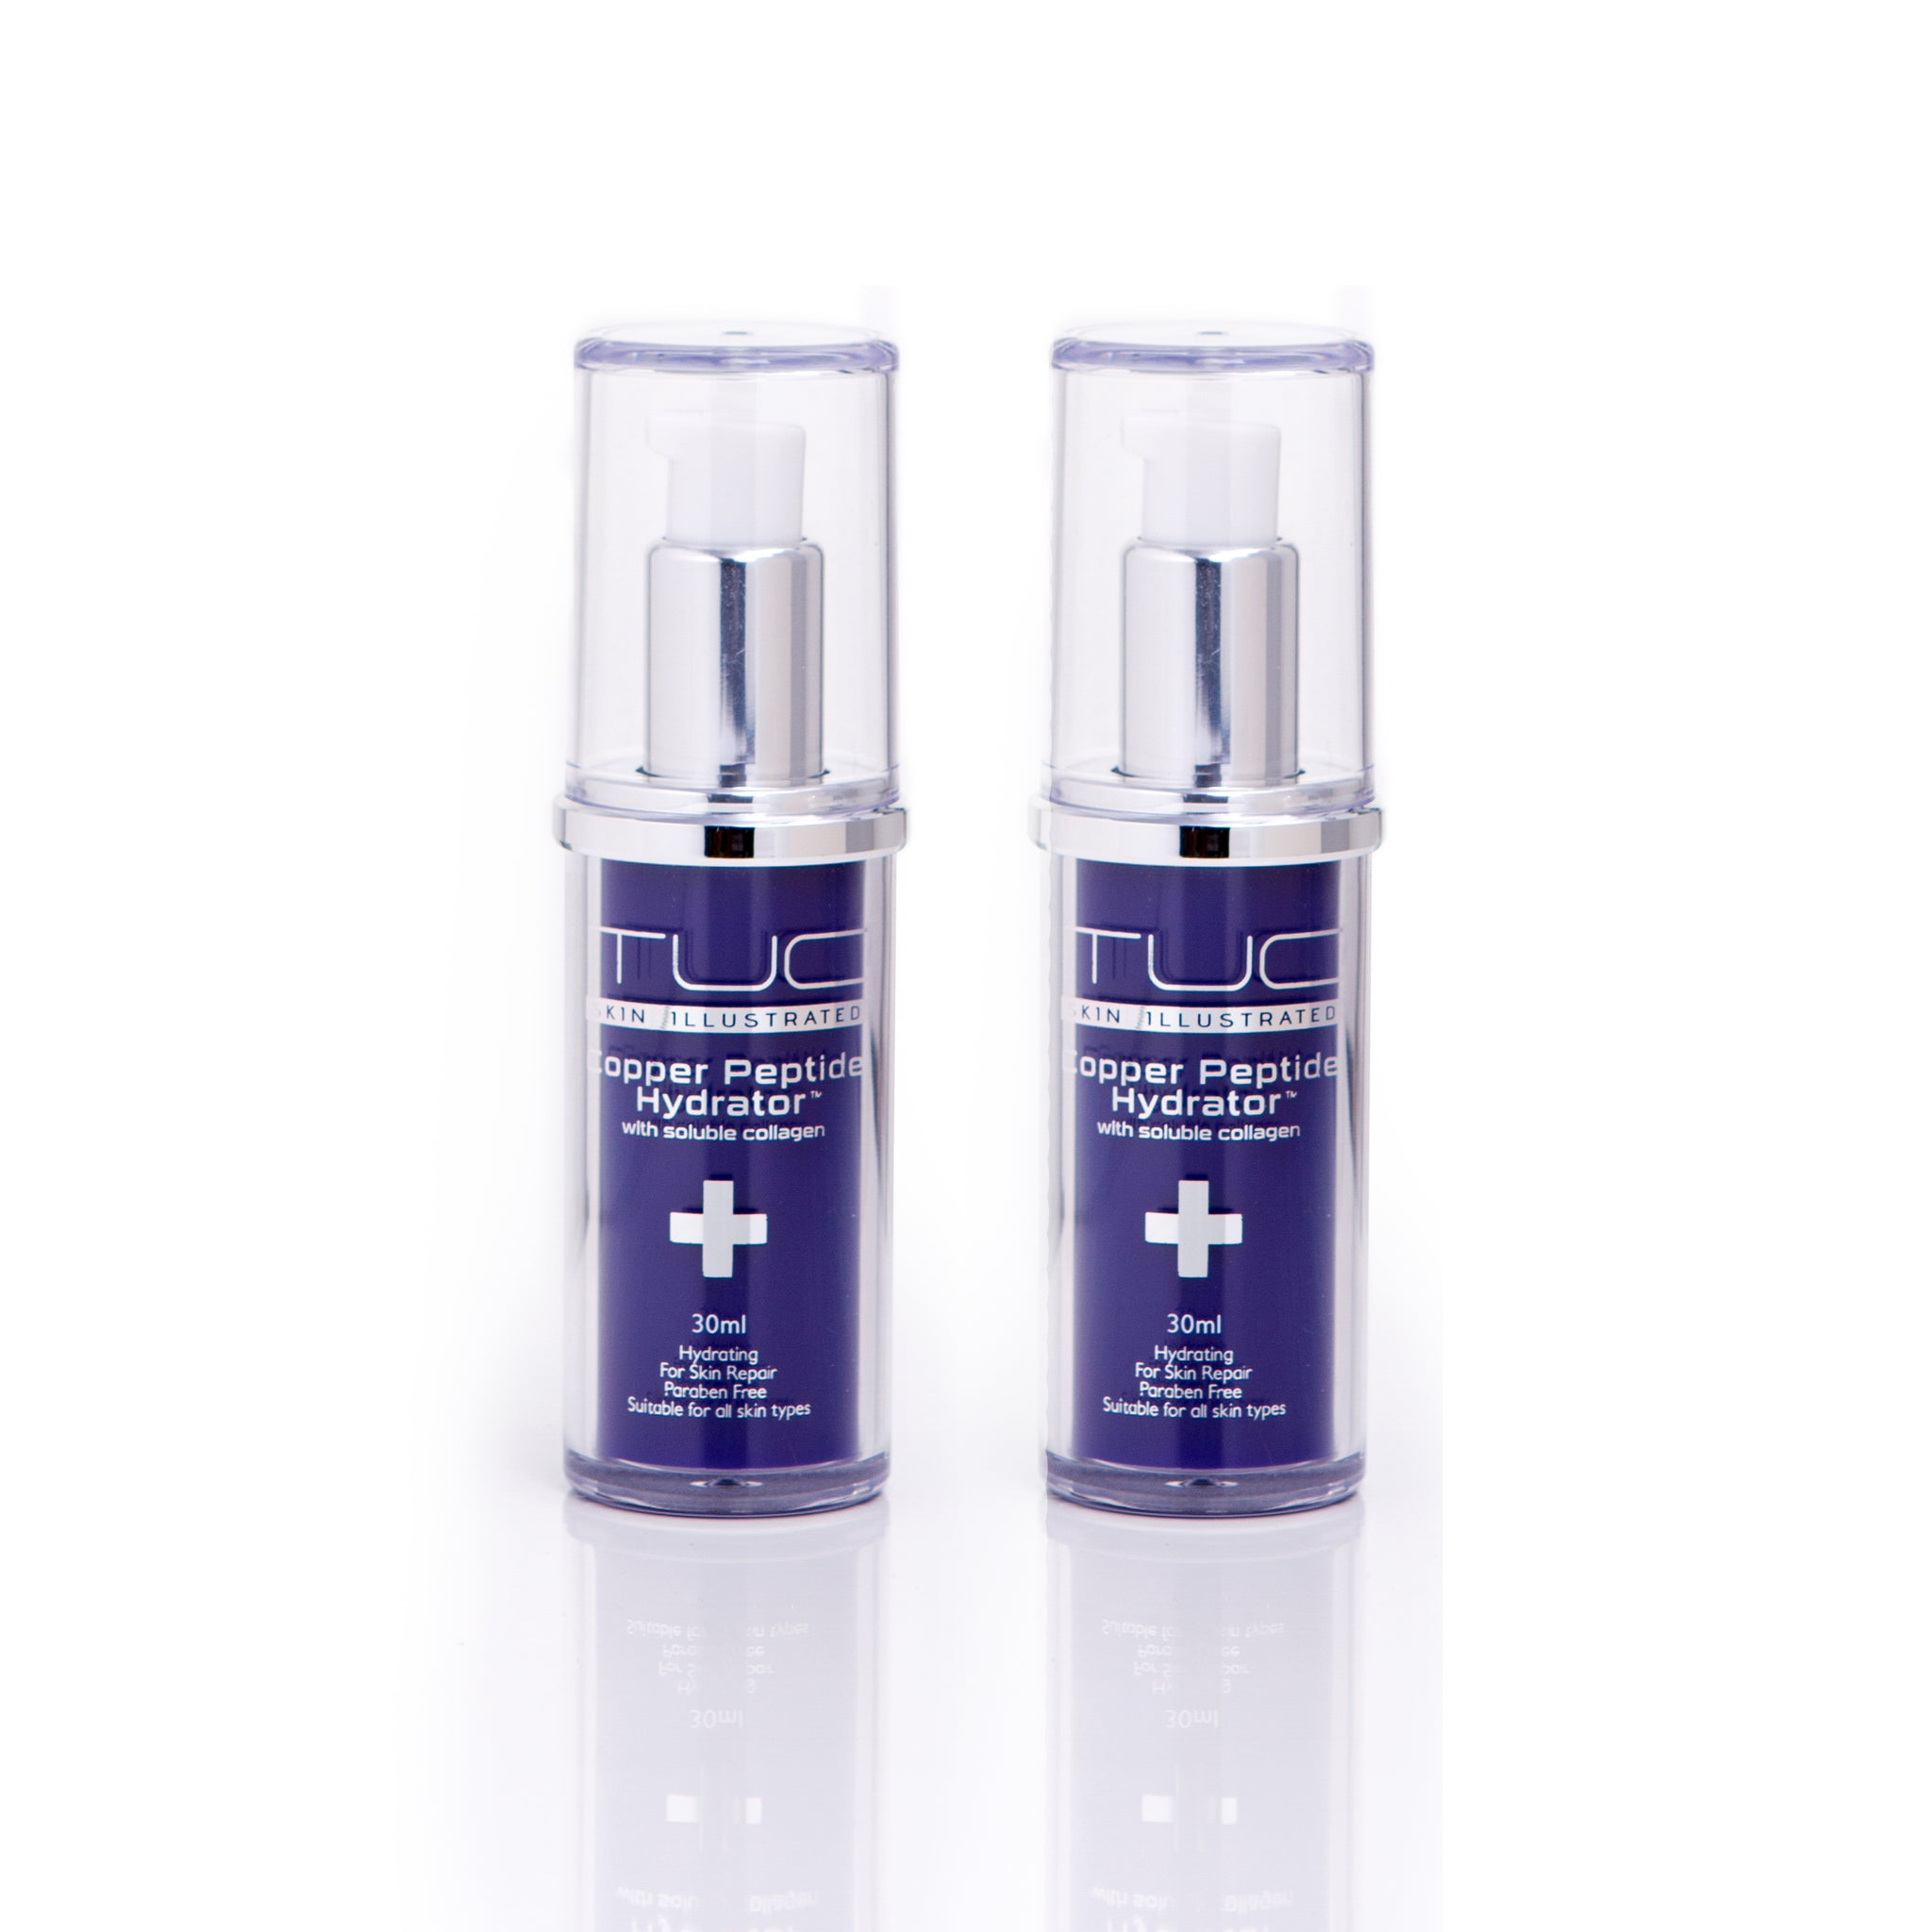 COPPER PEPTIDE HYDRATOR X'MAS BUNDLE [2 BOTTLES]